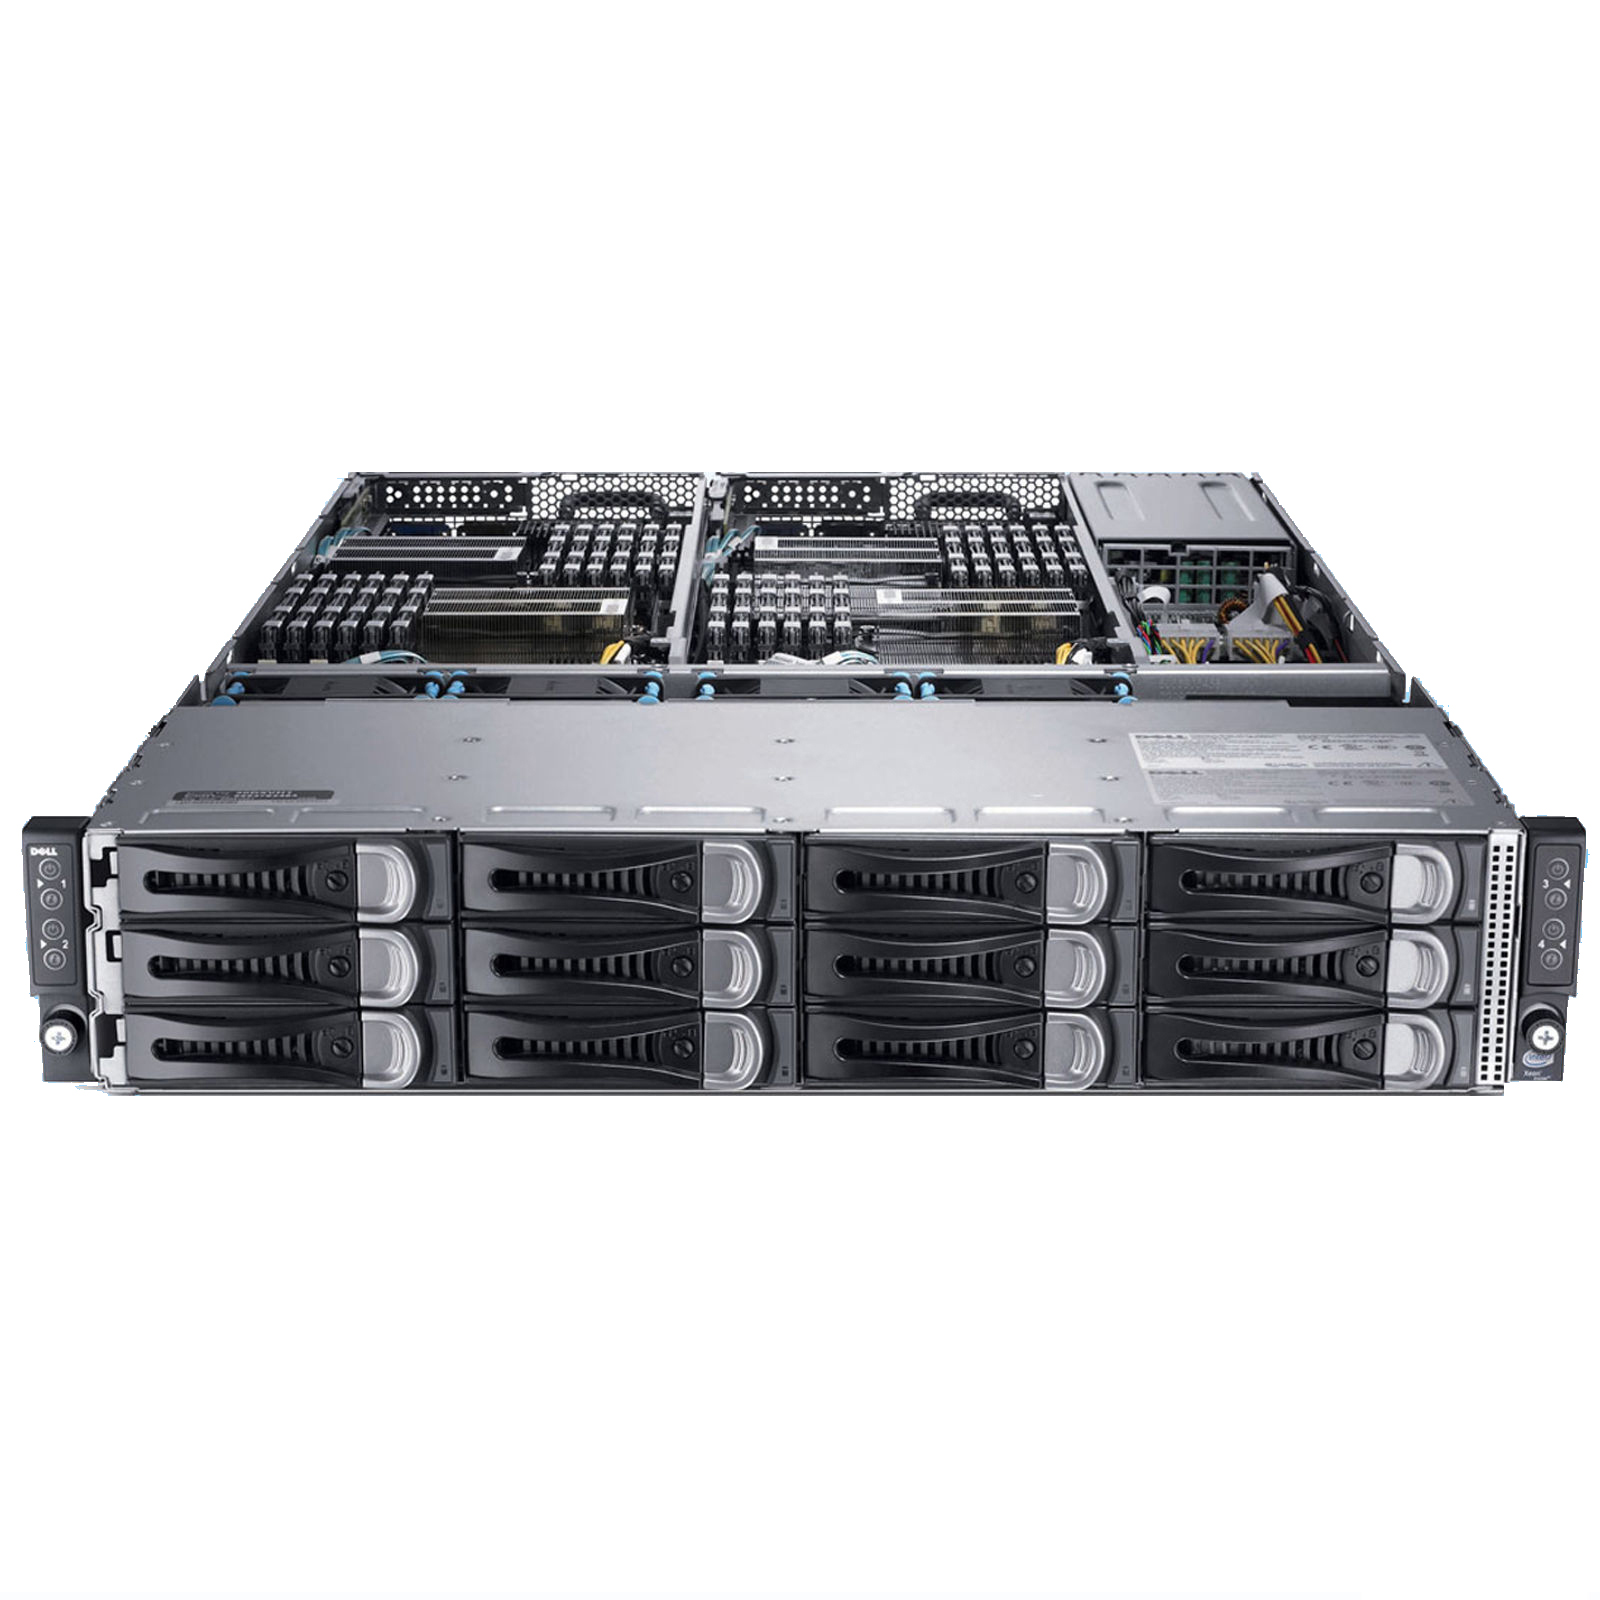 SERVER DELL POWEREDGE C6220 E5-2650 C2 (2.0Ghz - 20M Cache - 8 Core/ 16 Threads)